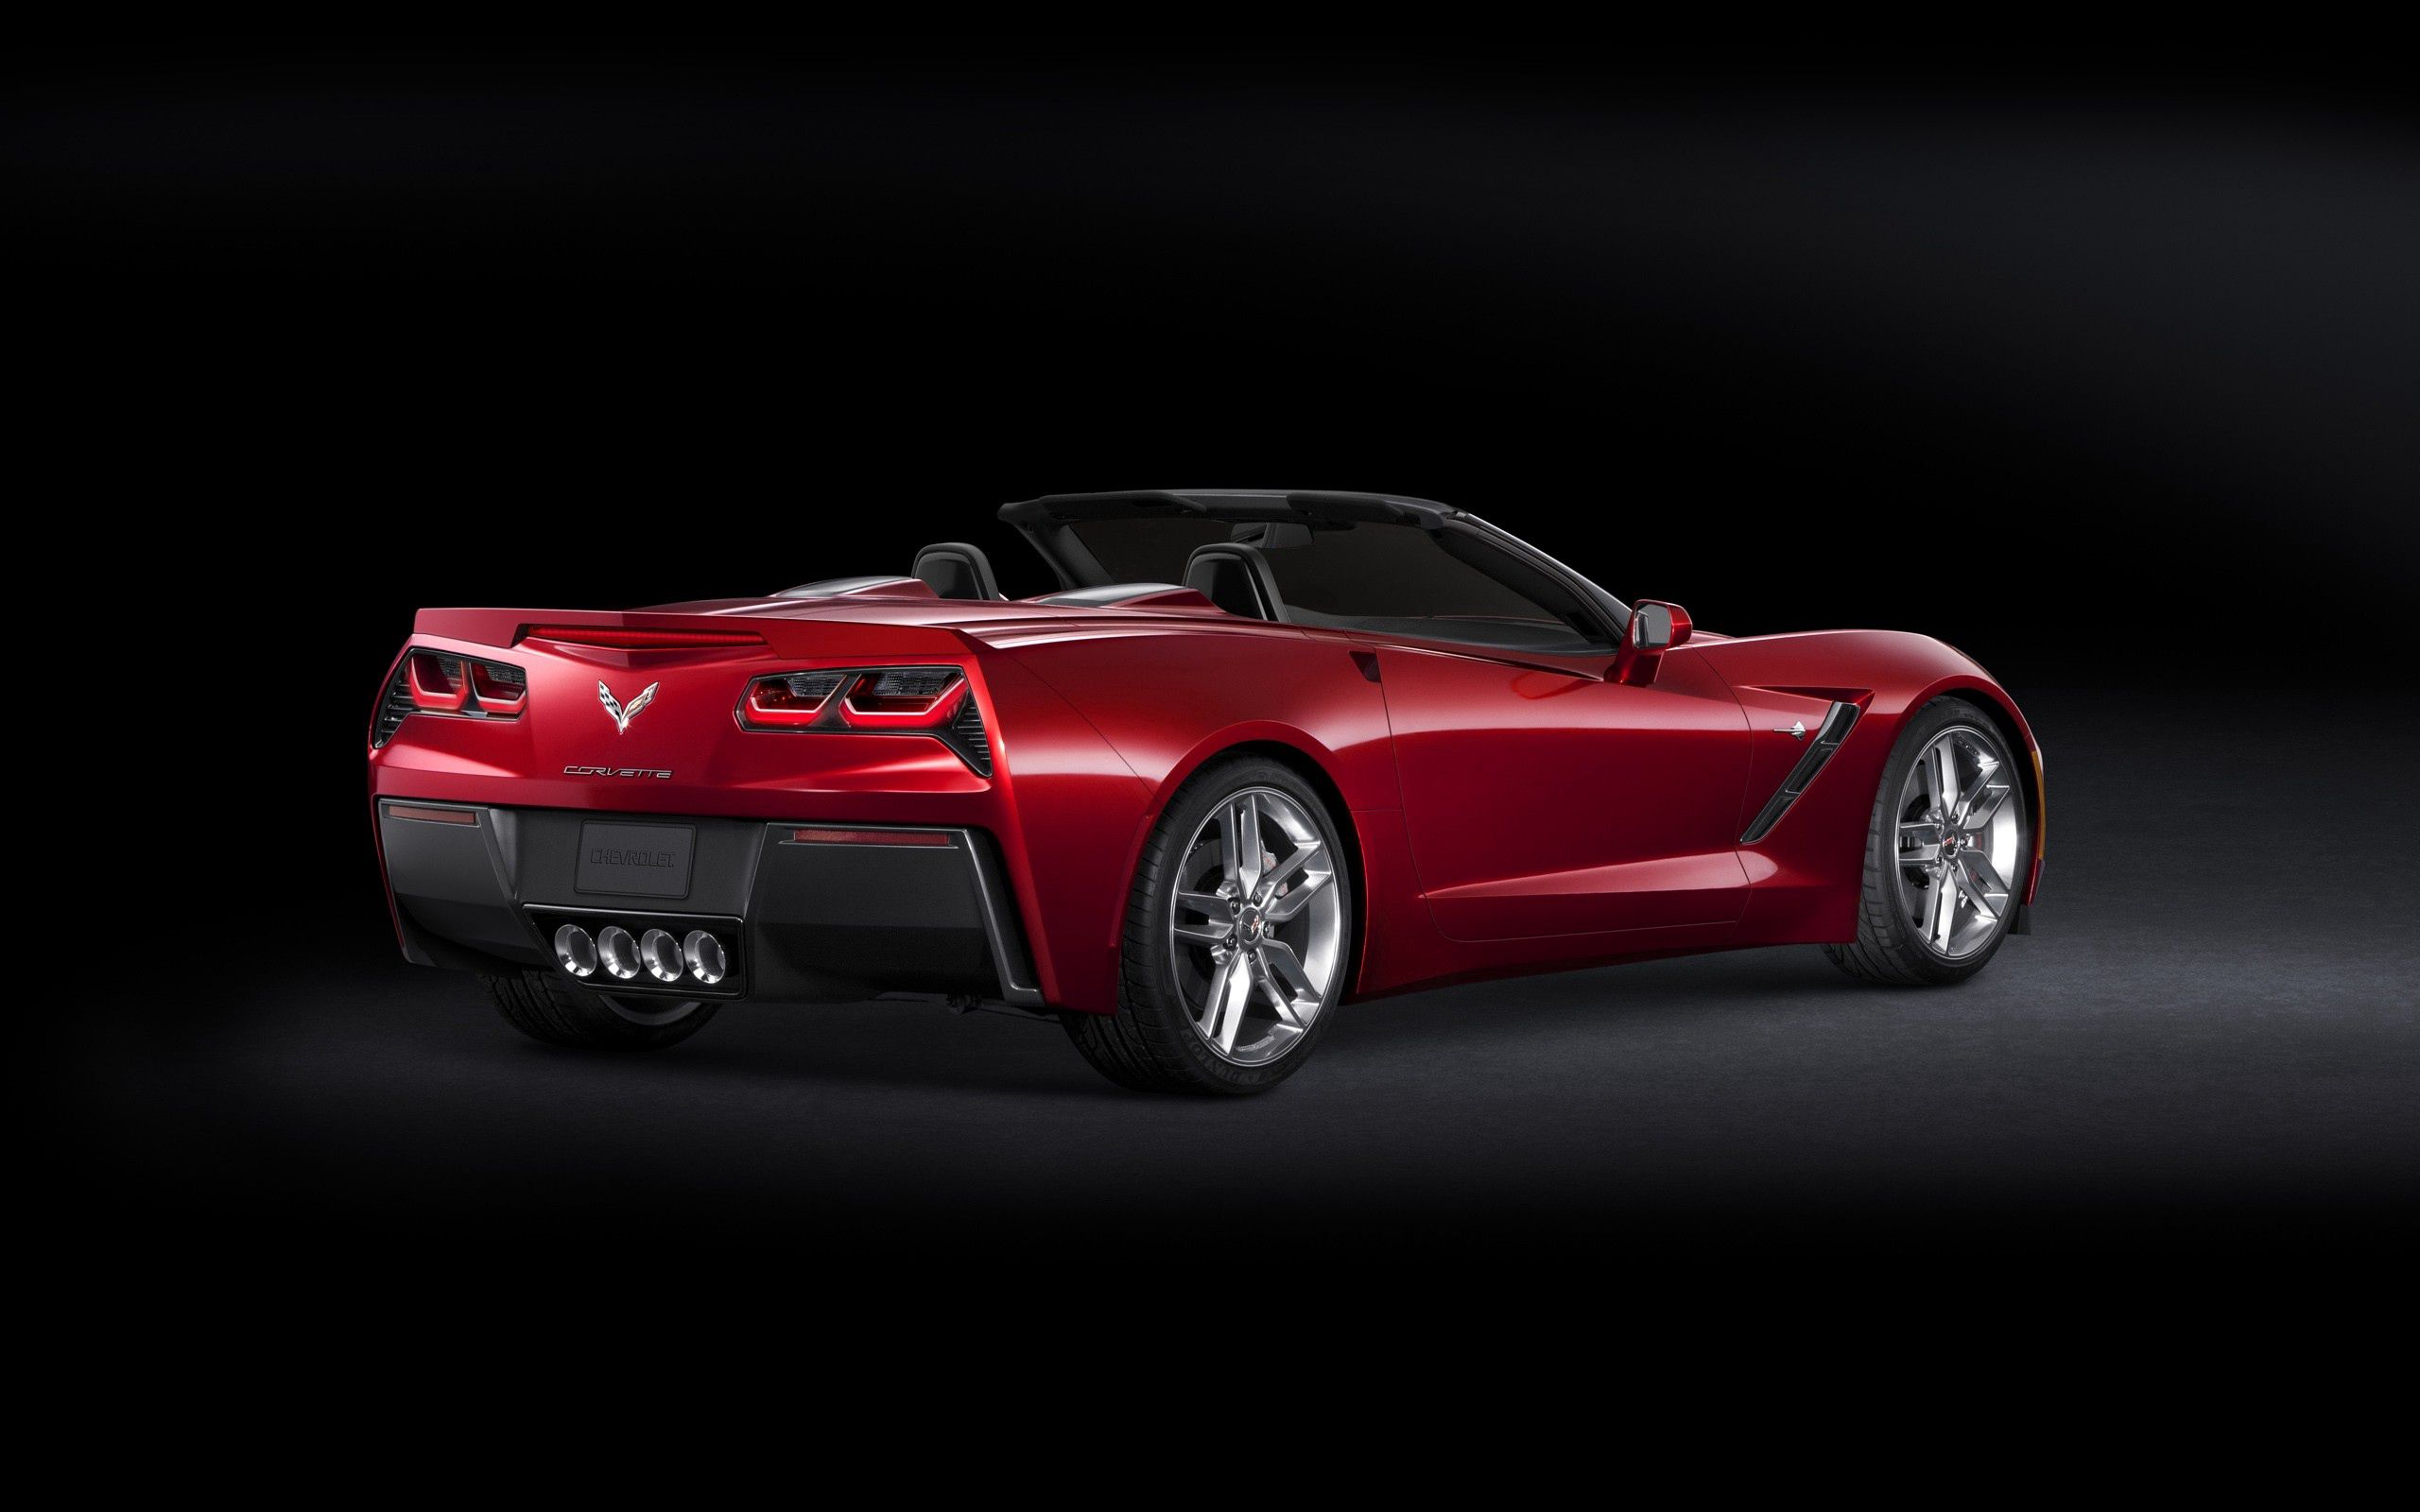 137099 download wallpaper Cars, Chevrolet Corvette, Auto, Stylish screensavers and pictures for free